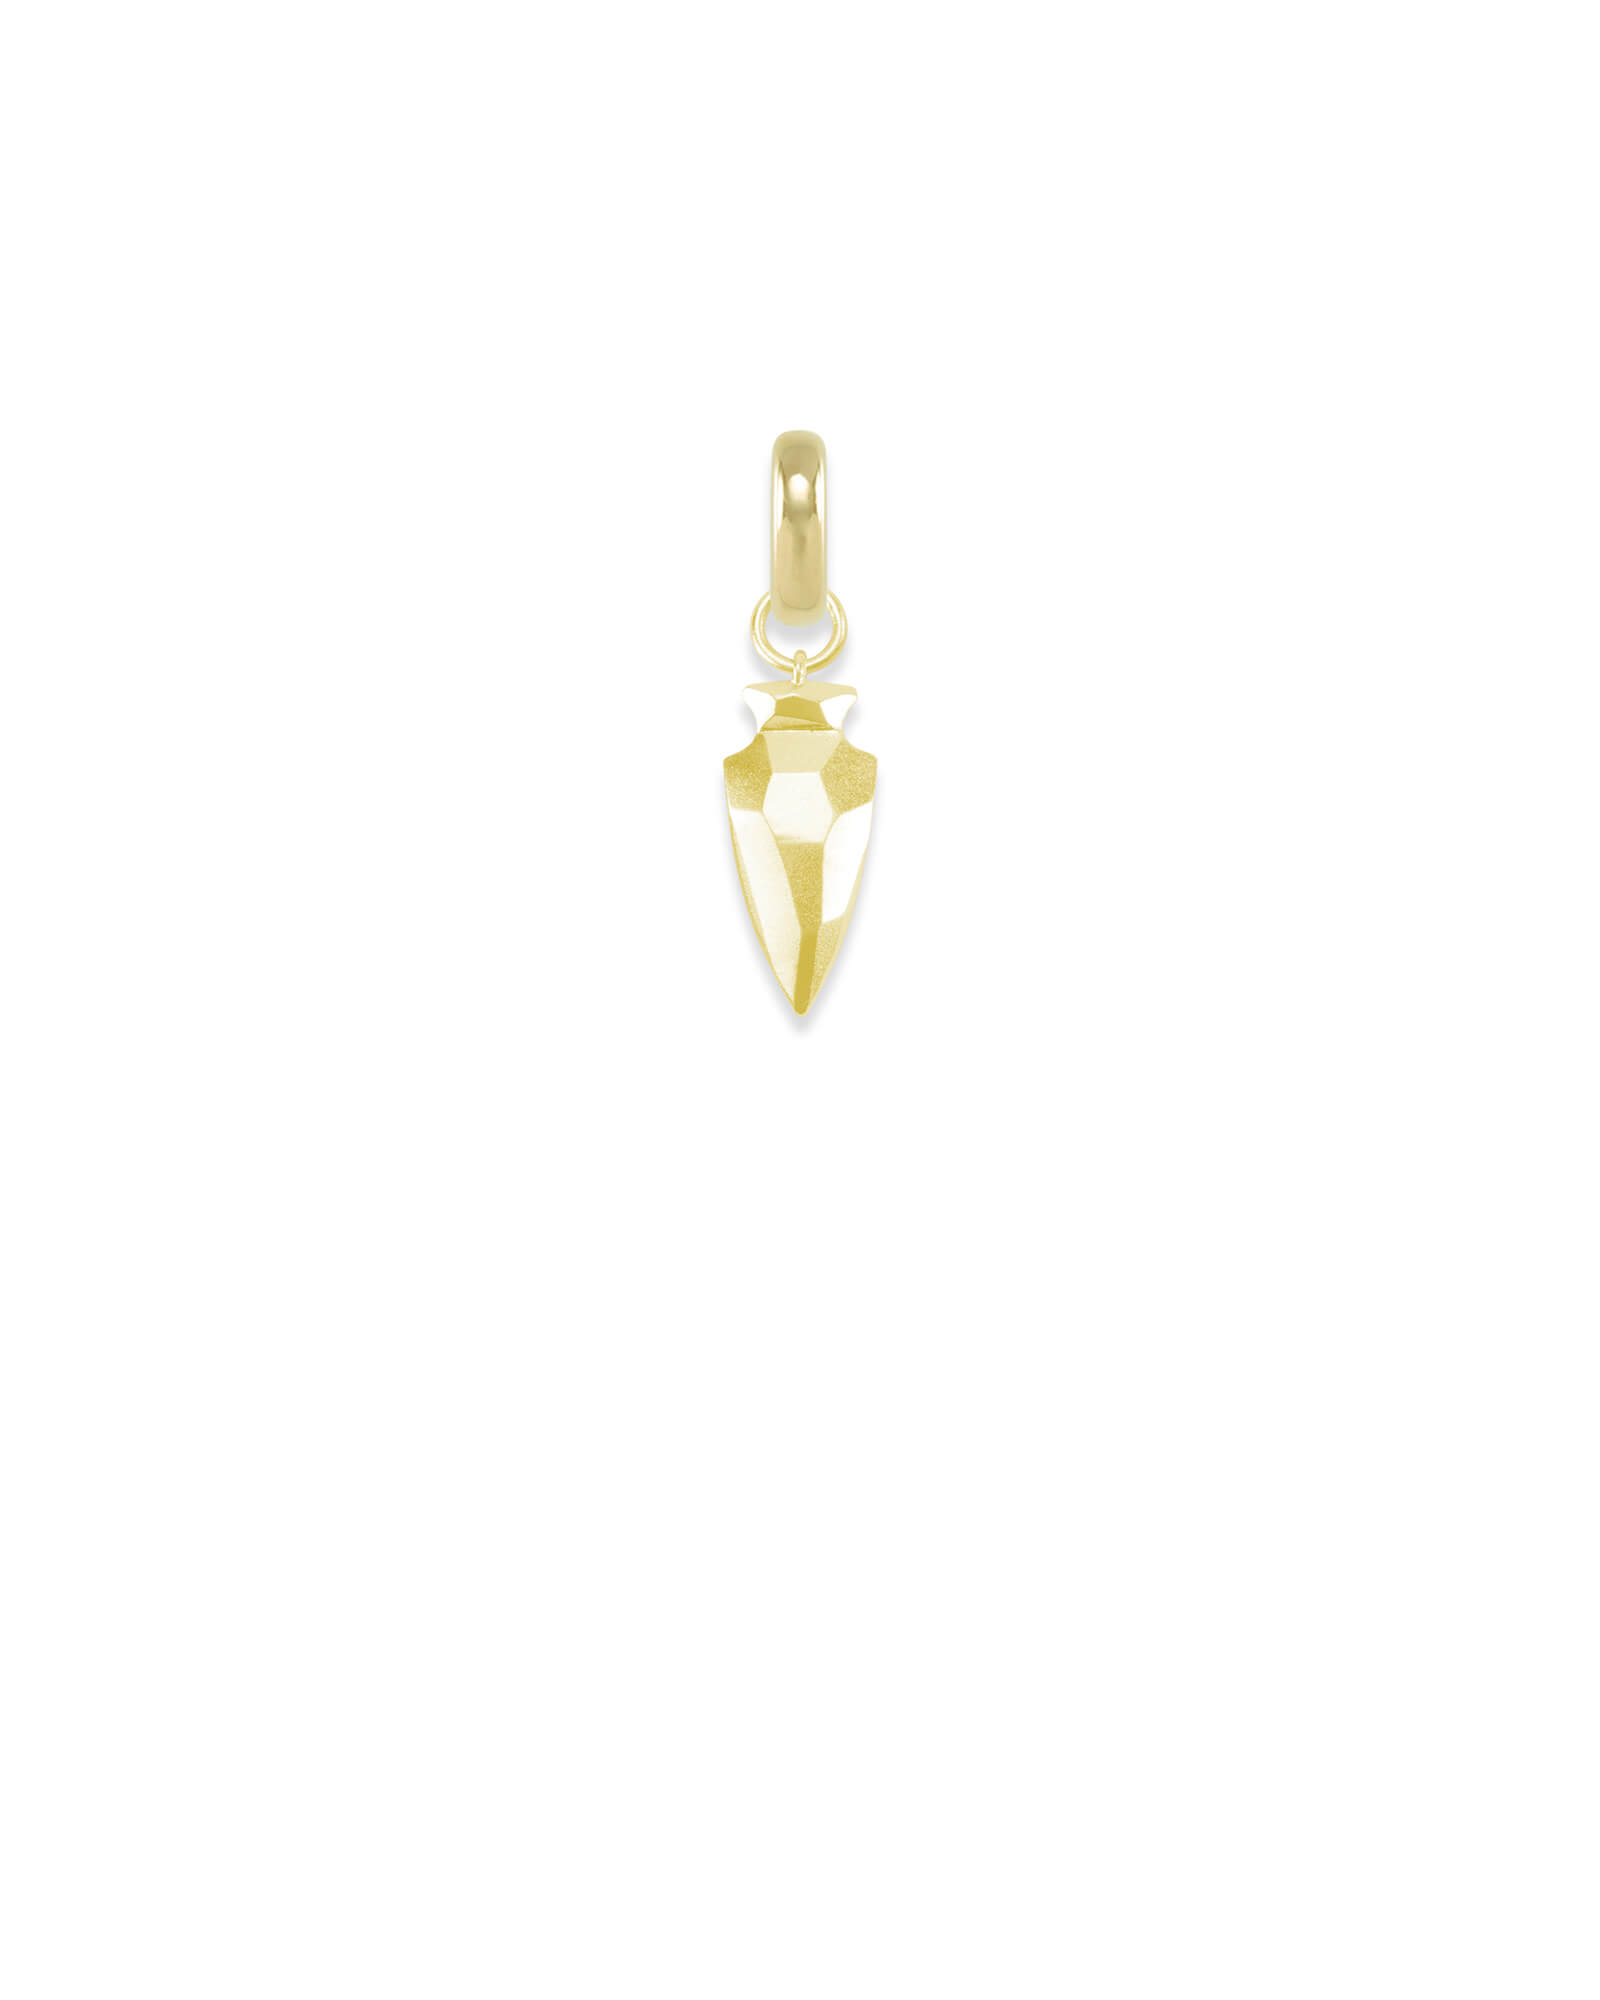 Missouri Arrowhead Charm in Gold